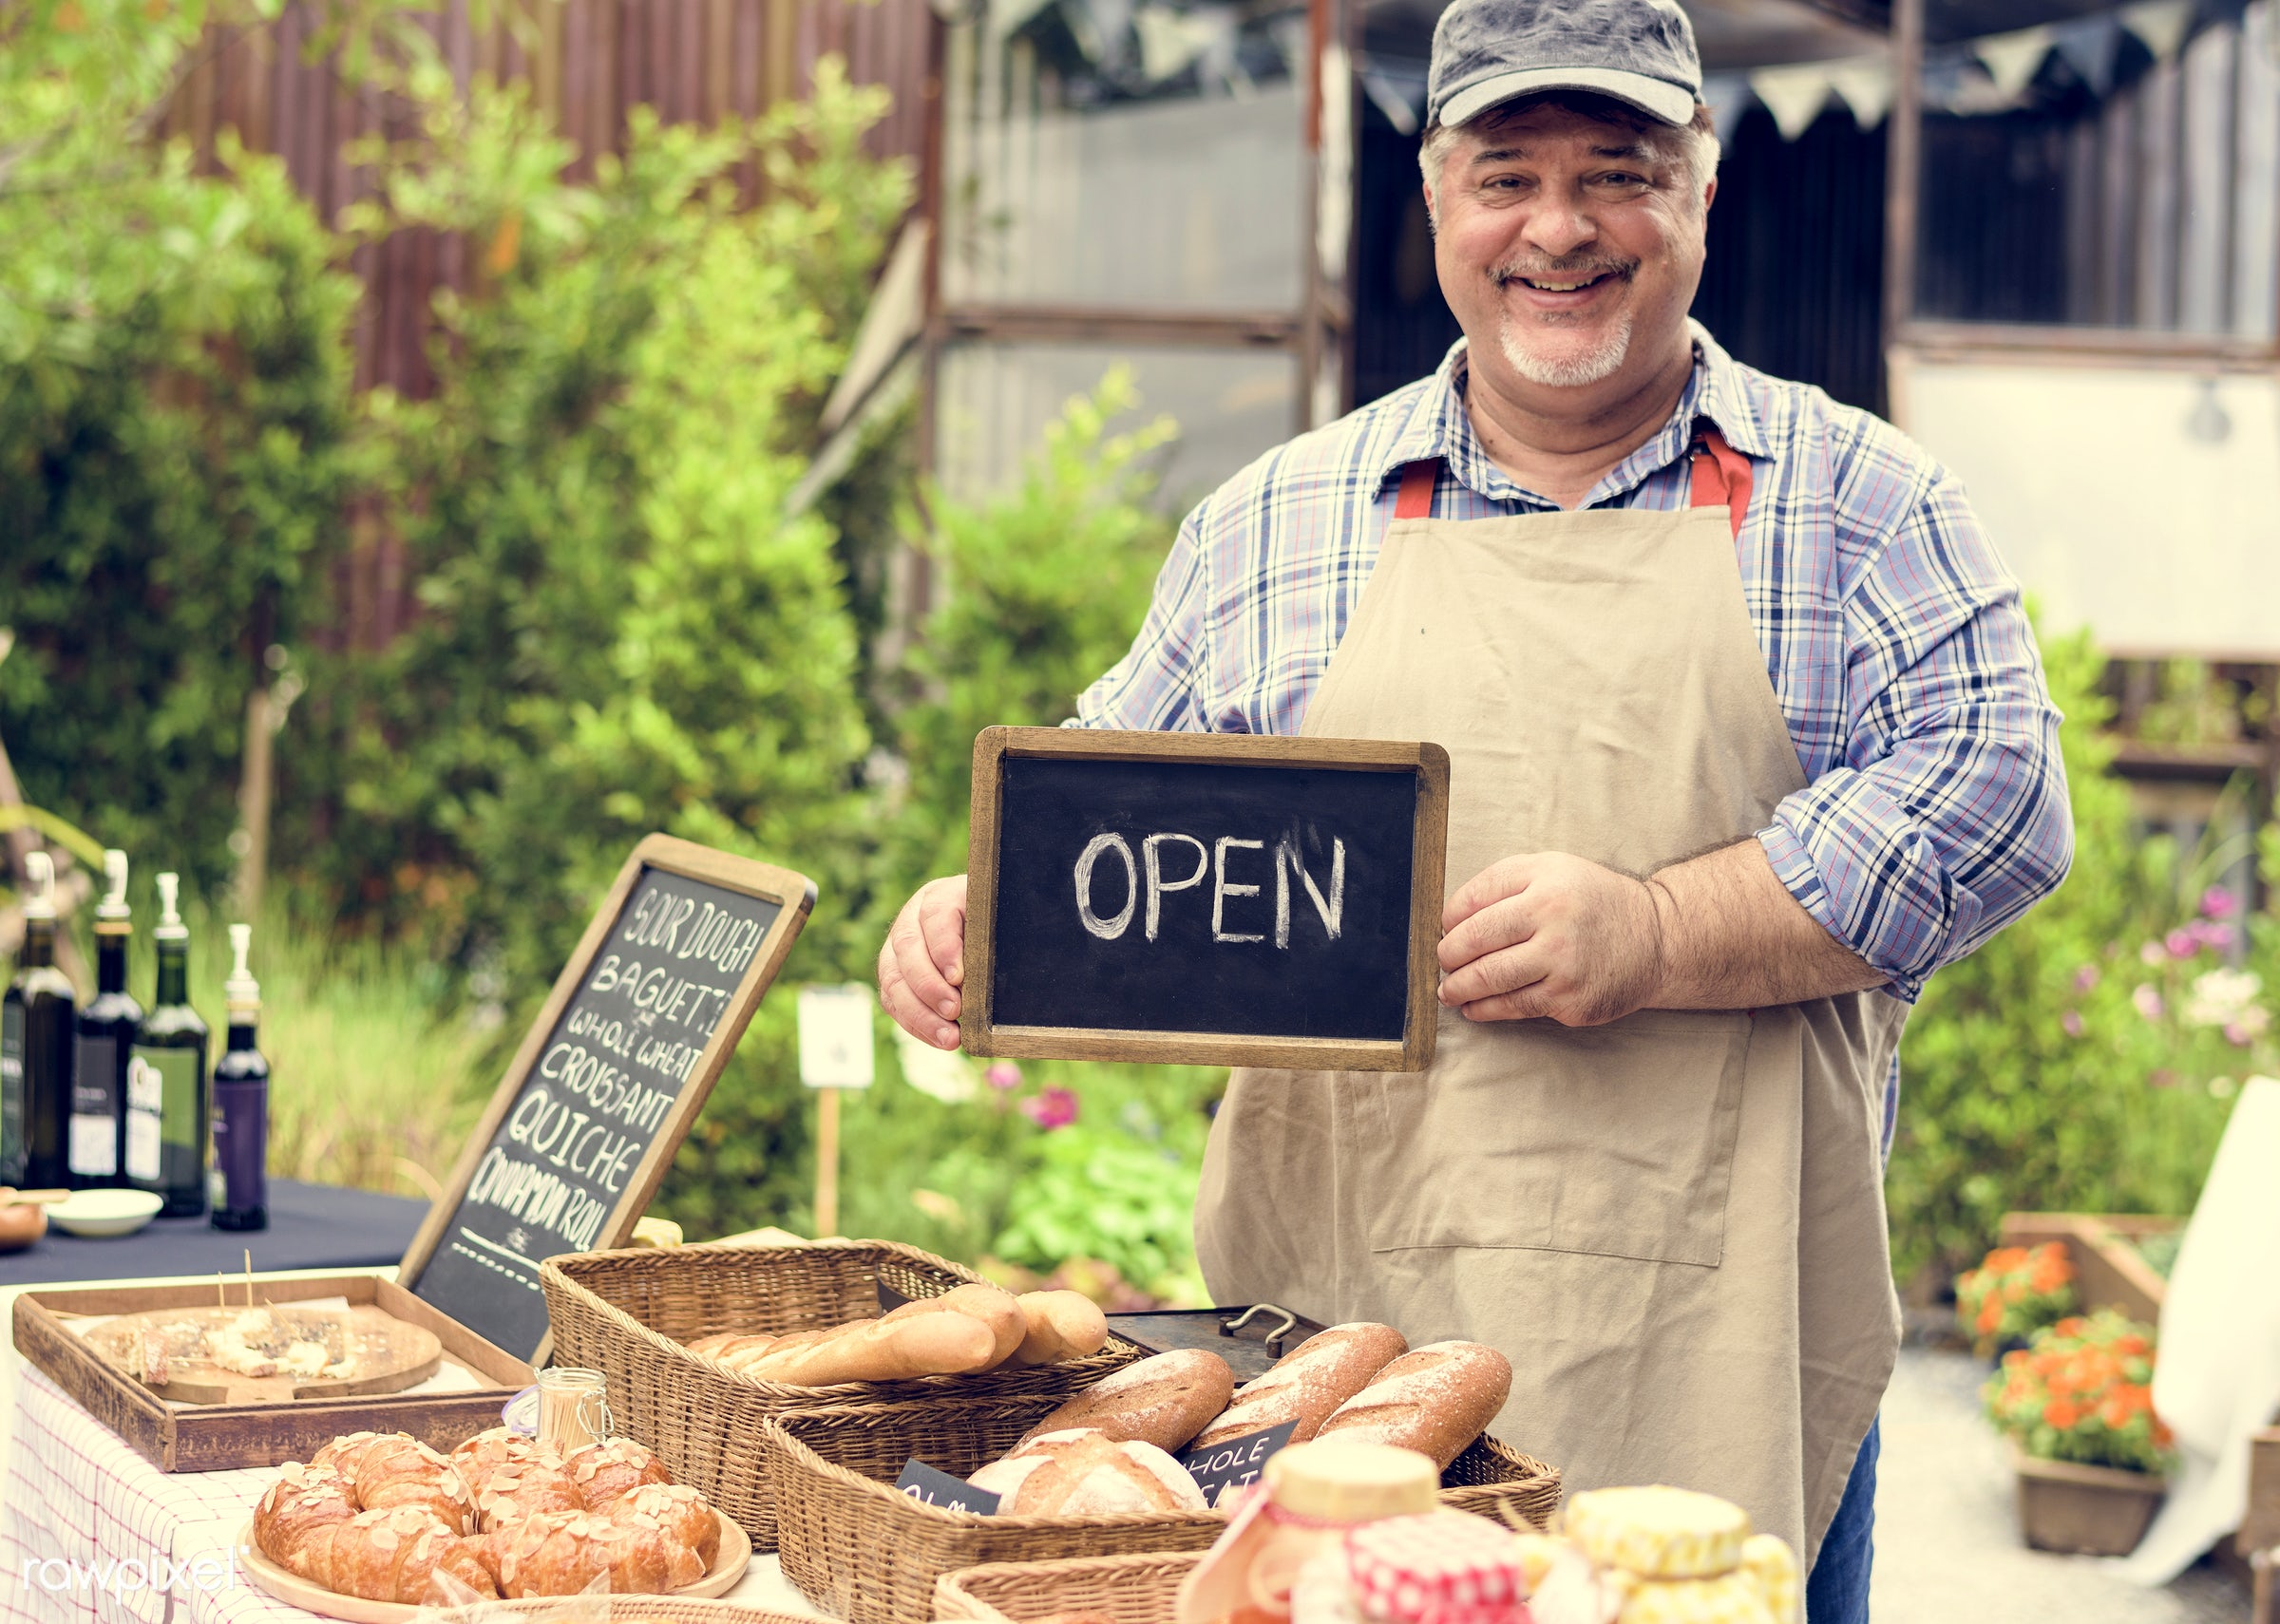 shop, cuisine, small business, holding, variation, patissier, homemade, baked, bread house, open, bakery, dough, jar, bread...